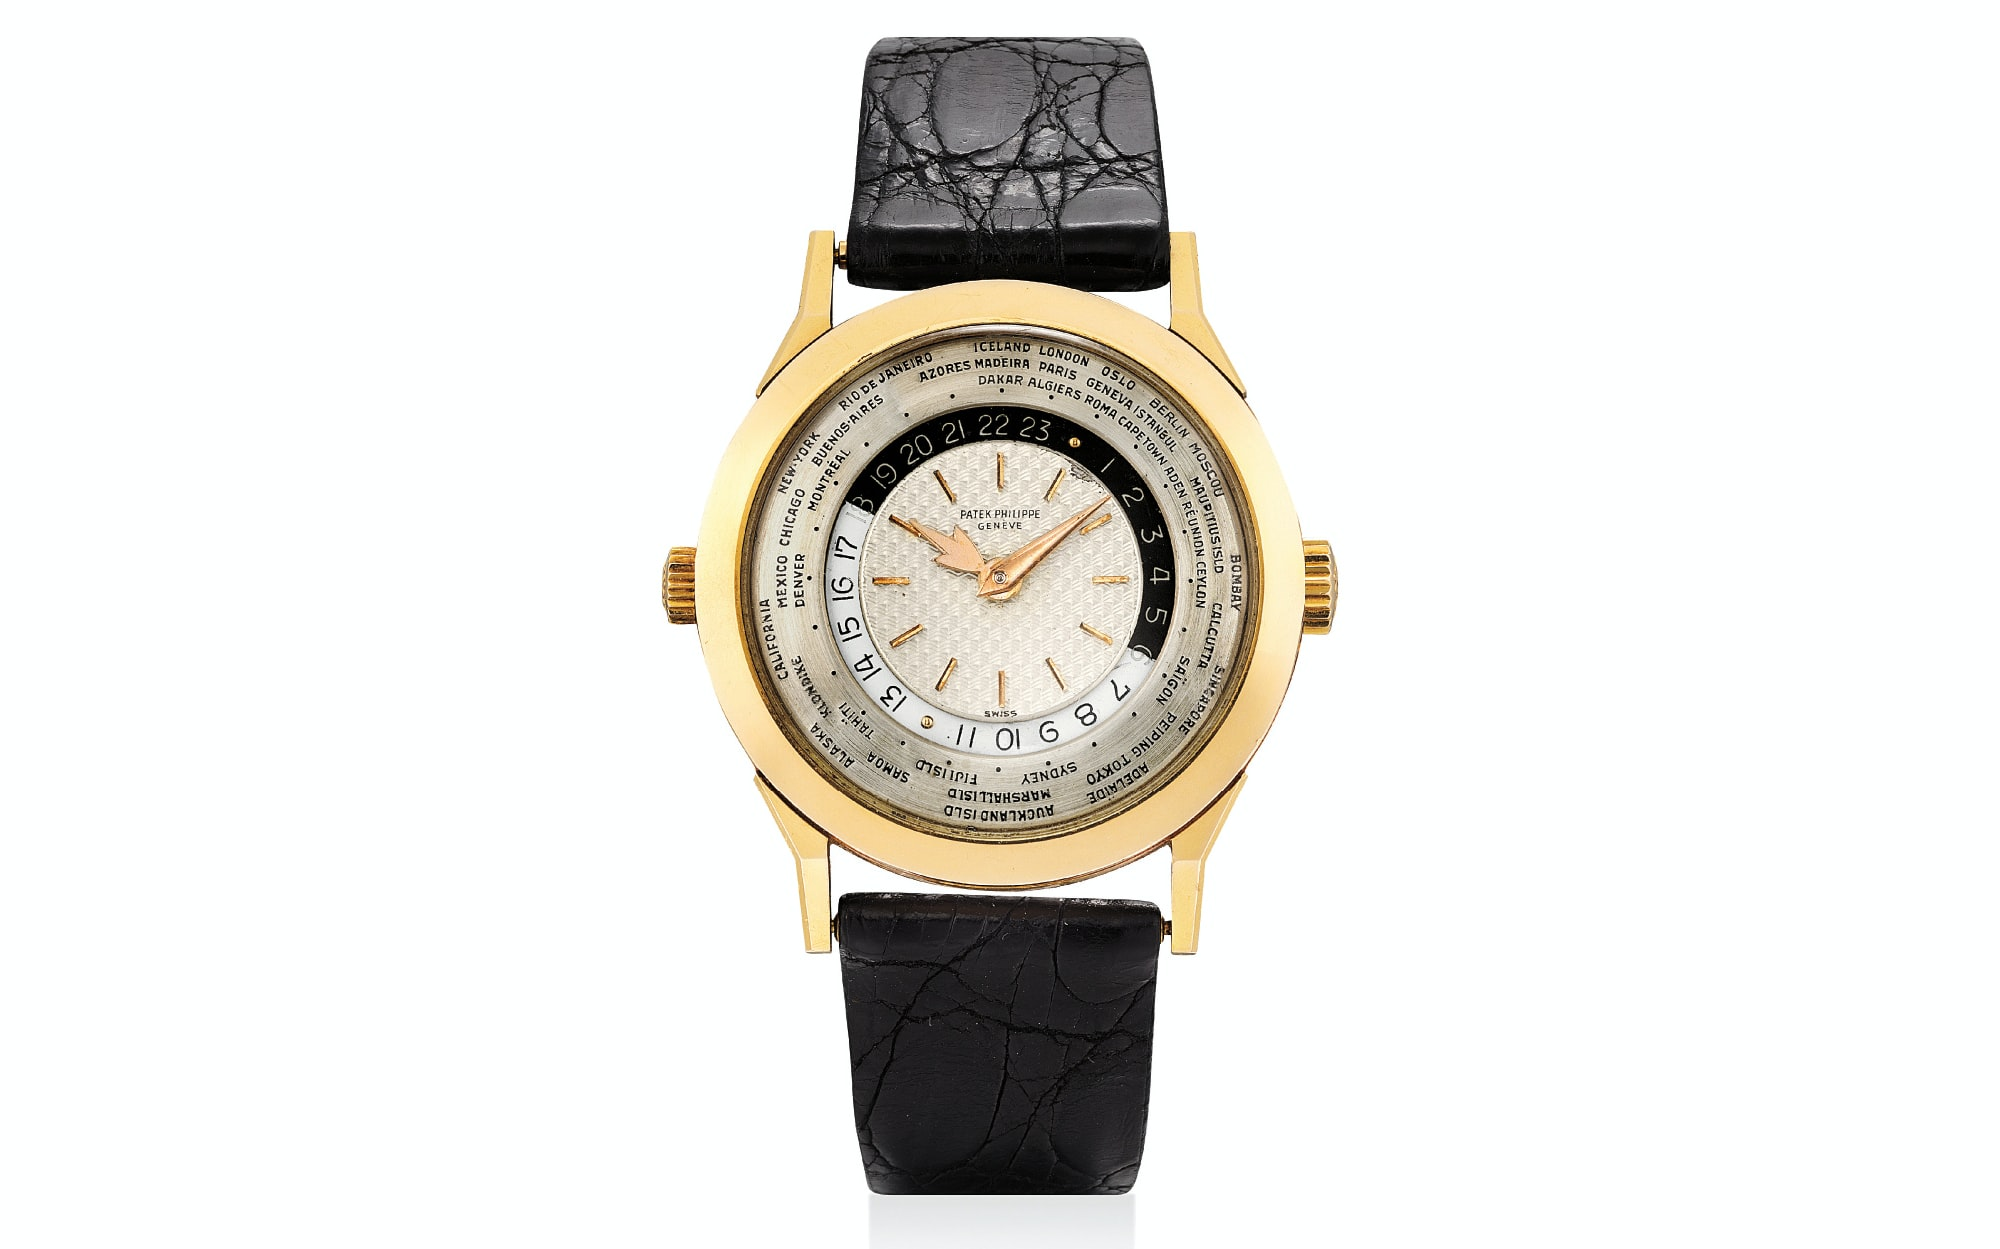 Lot 373 - Patek Philippe Two-Crown World Timer Ref. 2523/1 in Pink Gold.  A Look At The Highlights Of The Phillips Hong Kong Watch Auction: Two A Look At The Highlights Of The Phillips Hong Kong Watch Auction: Two Untitled 1